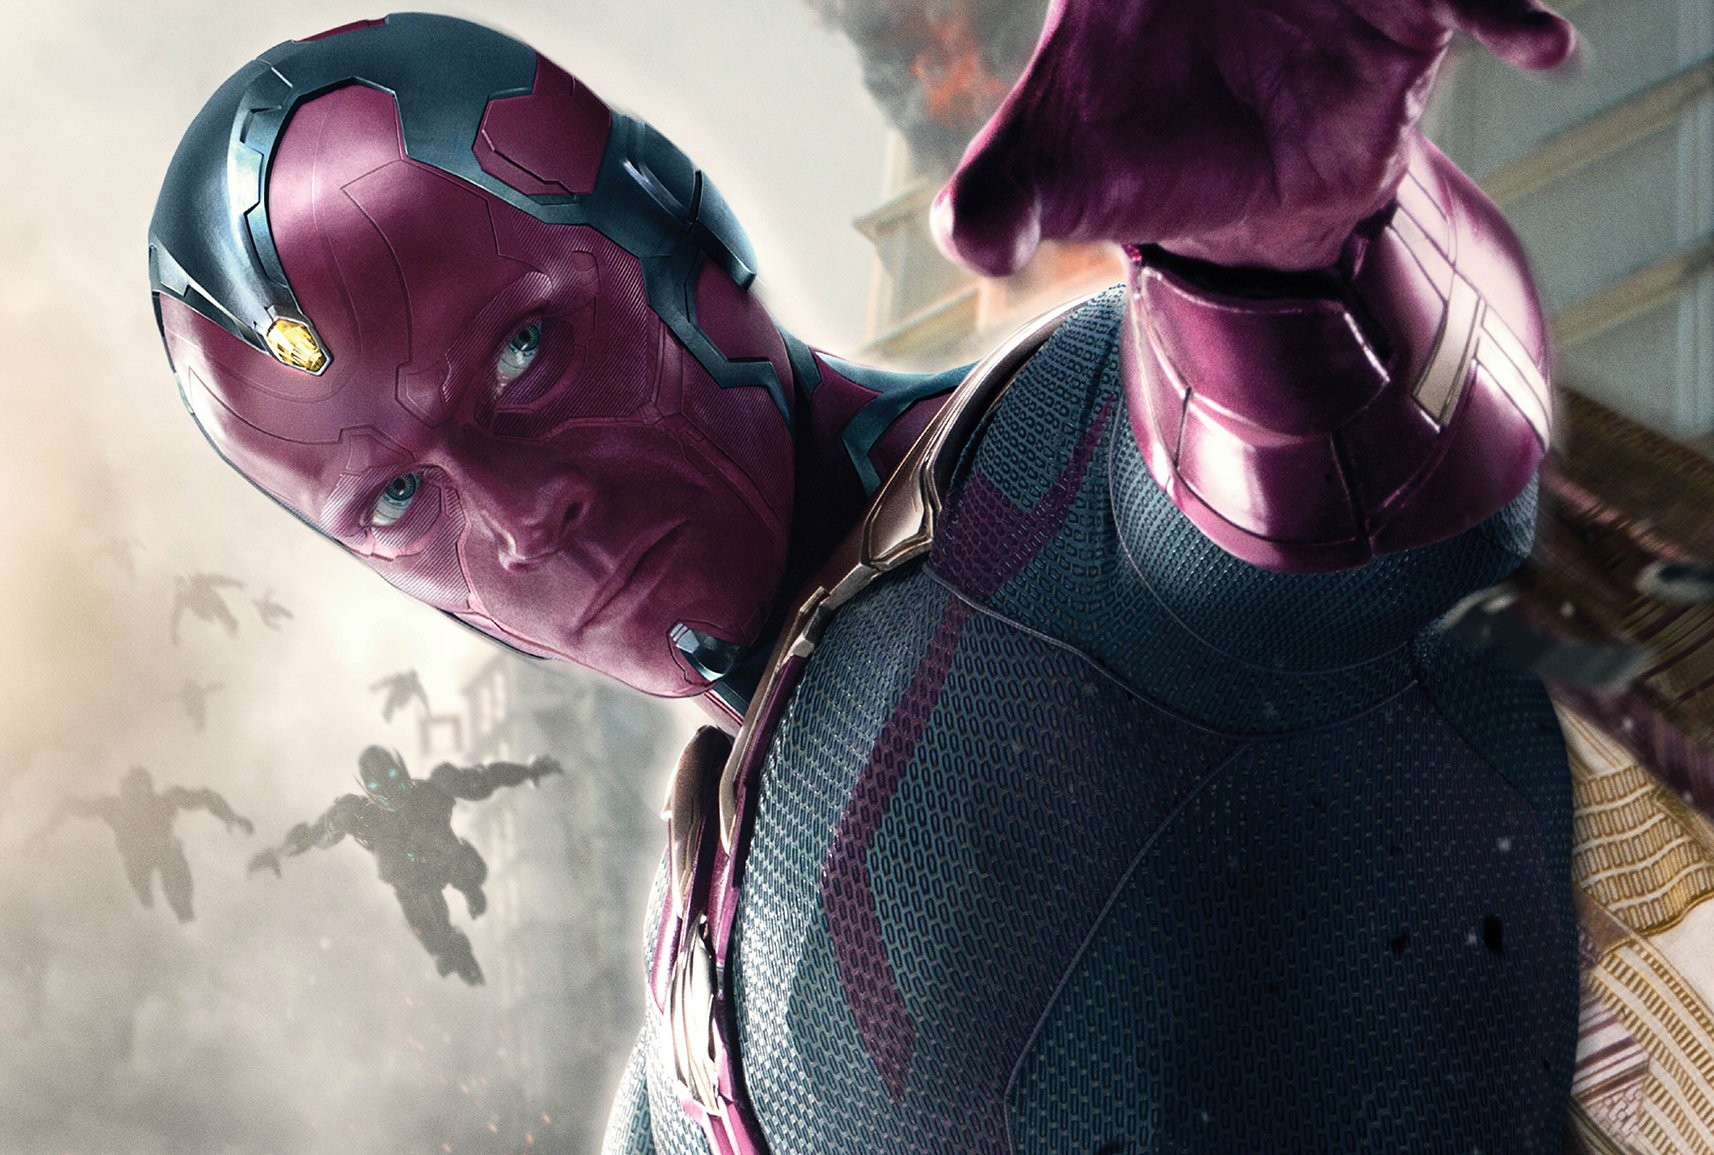 vision marvel avengers super hero hd image wallpaper